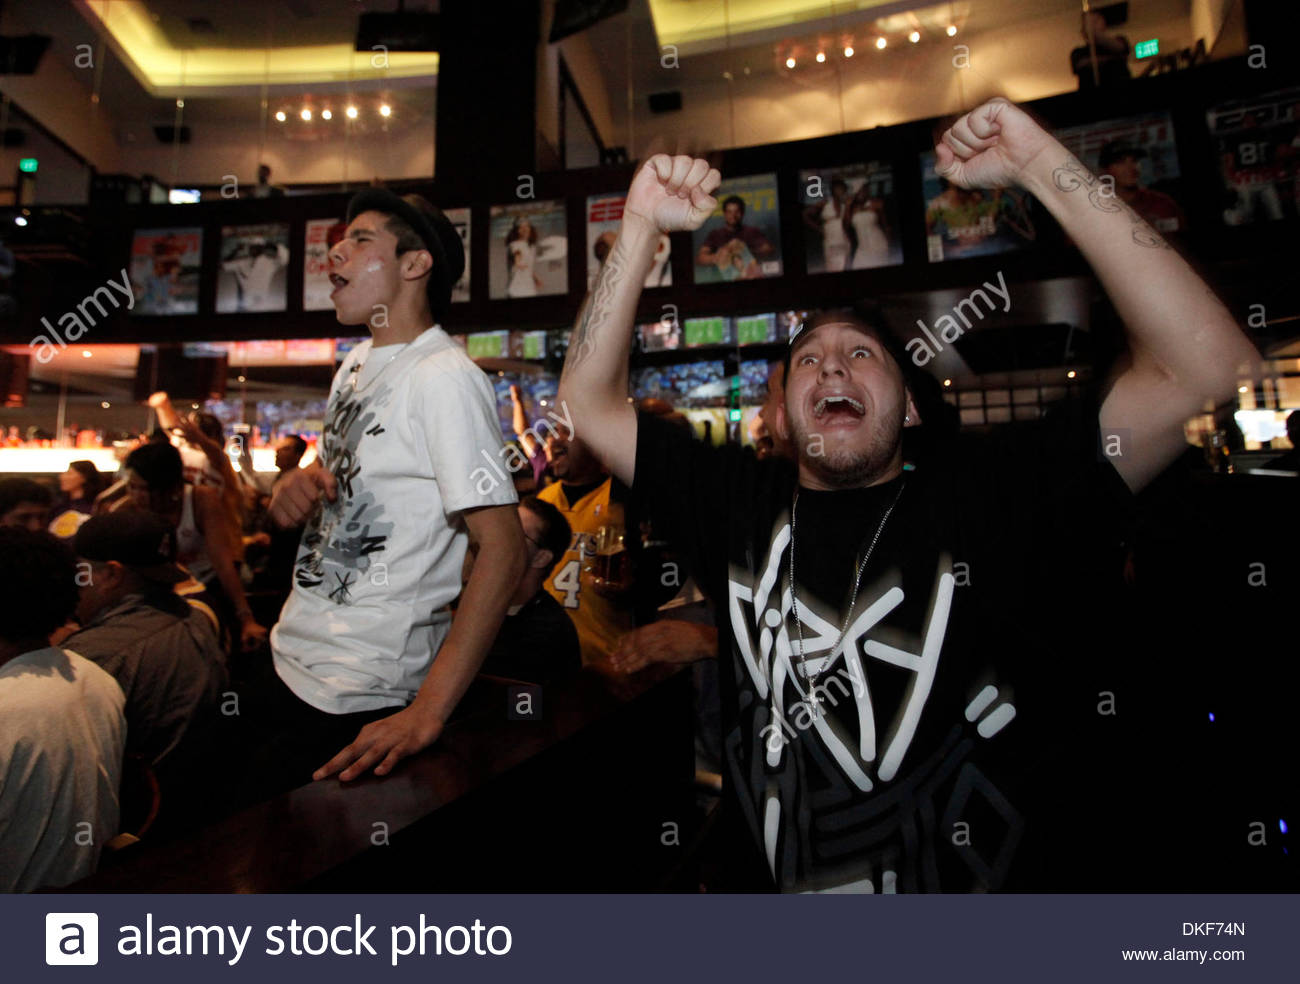 Laker fans cheer as they watch the Los Angeles Lakers play